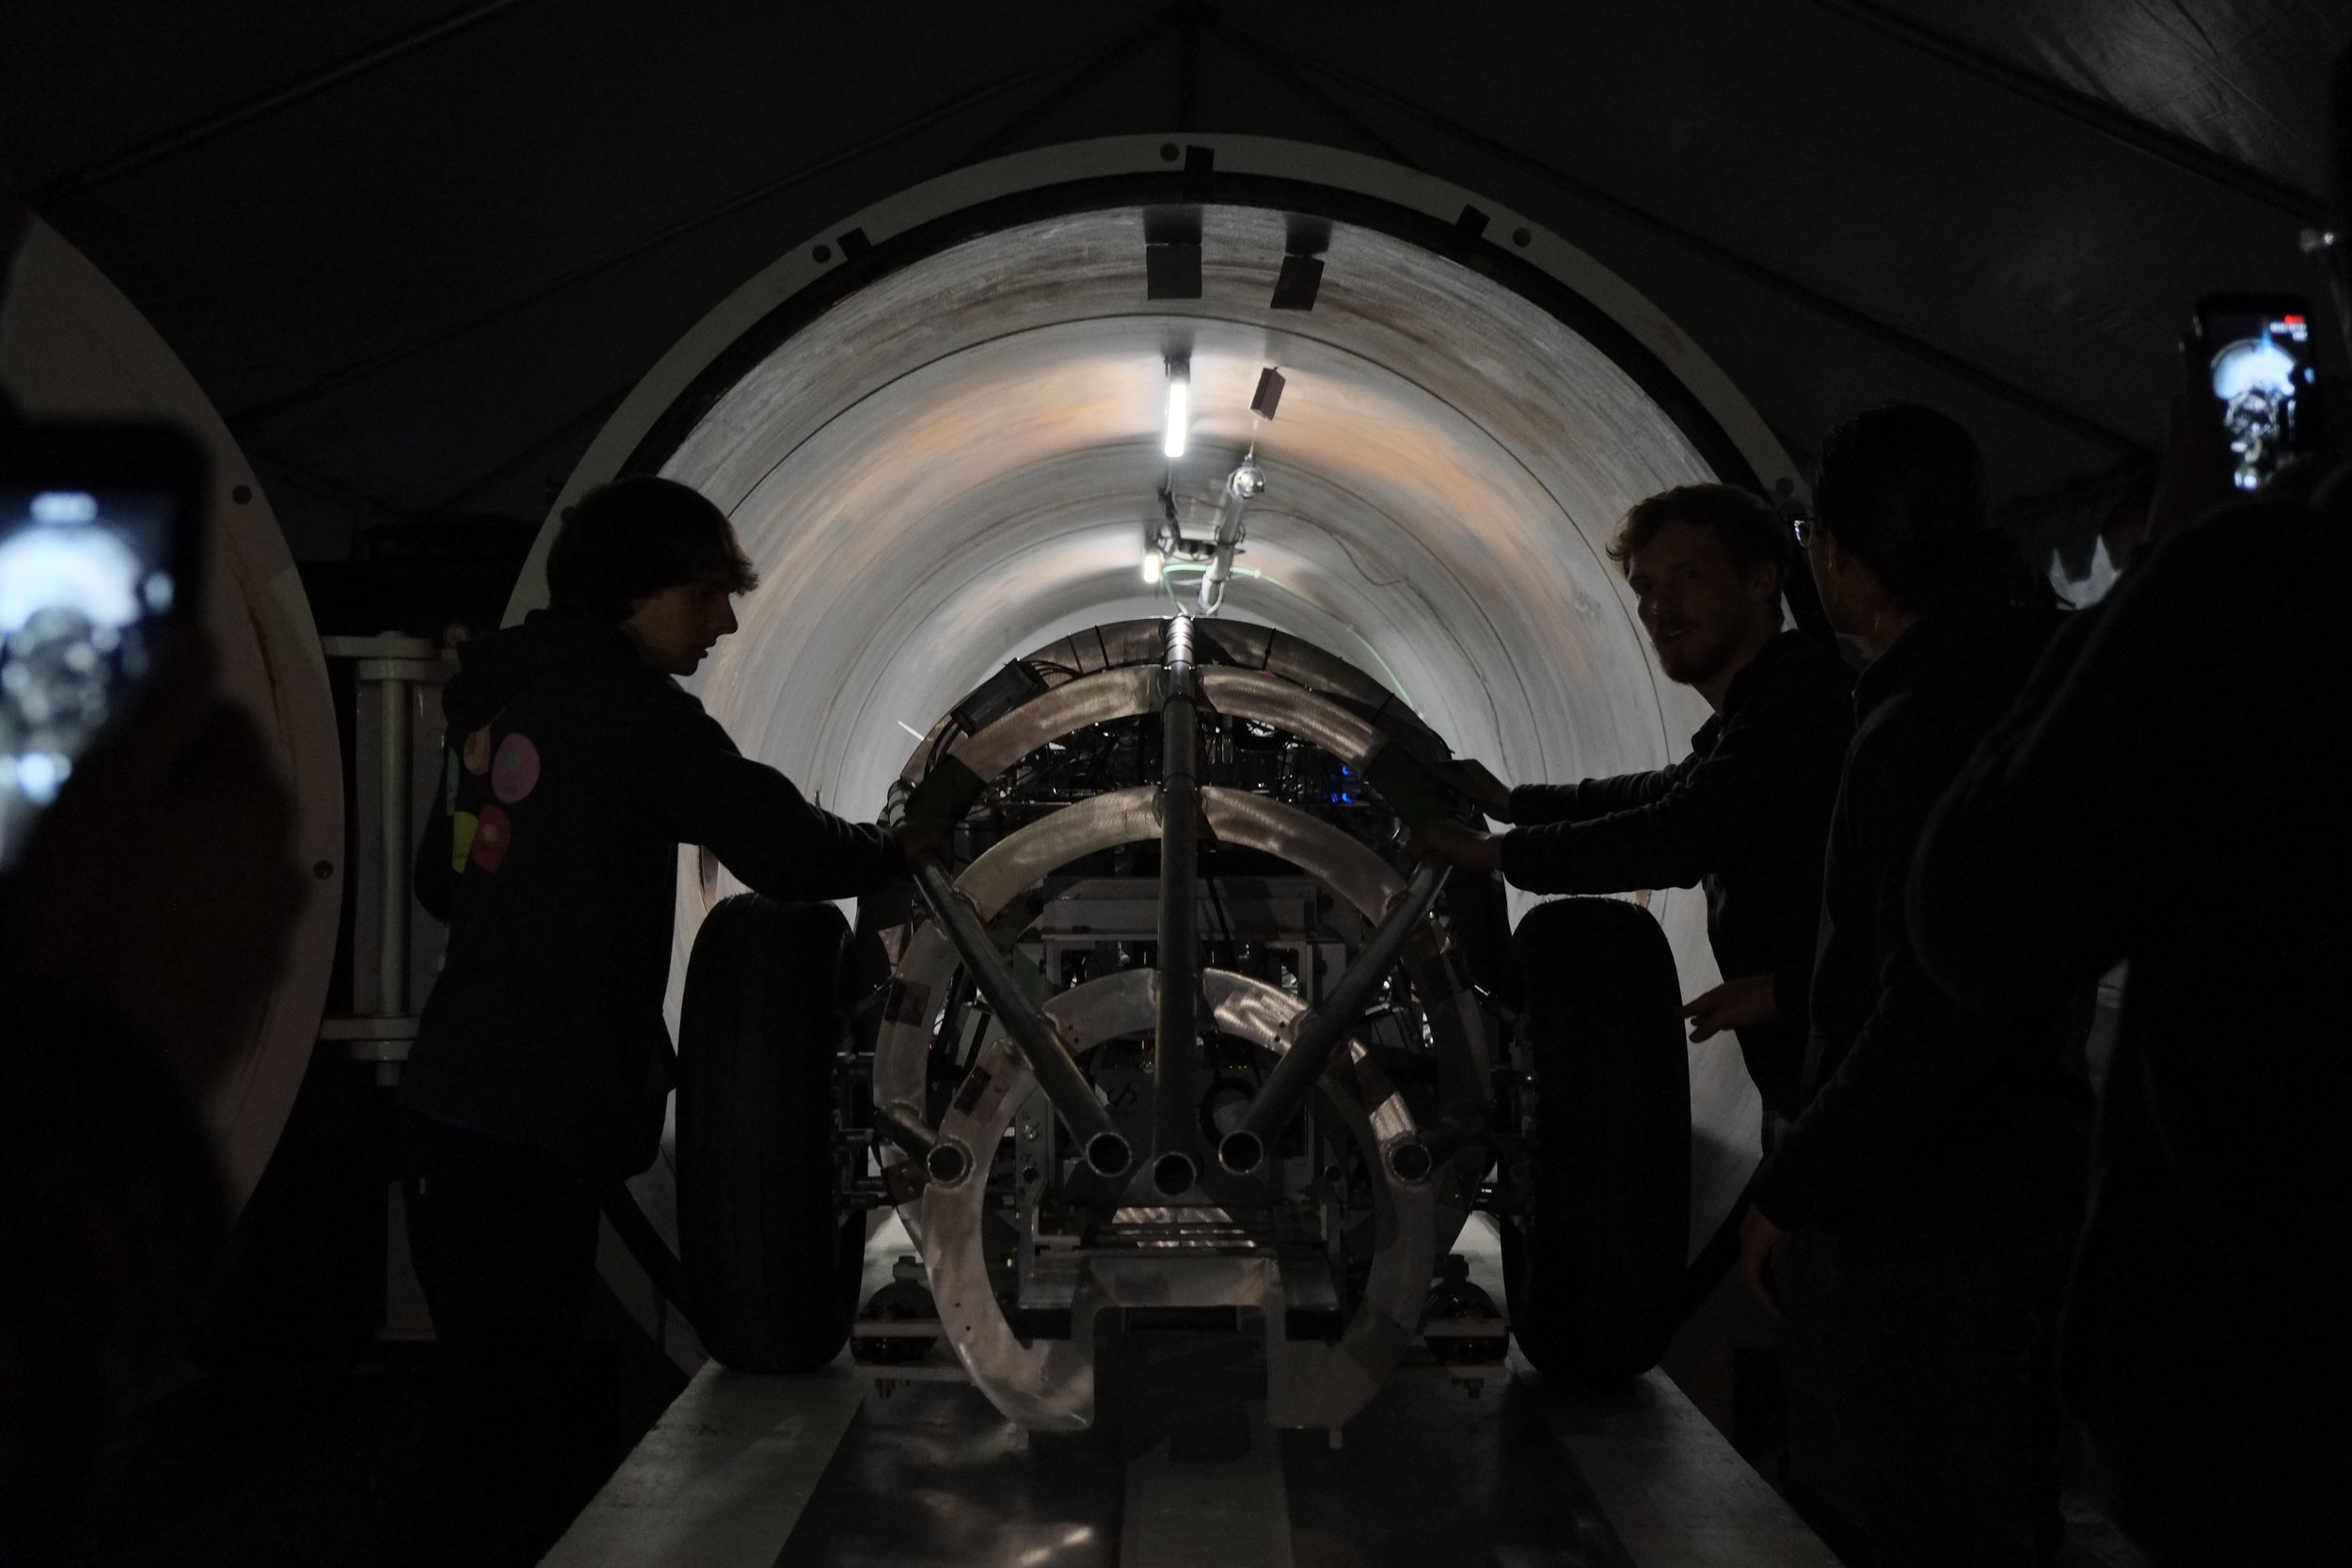 University of florida's gatorloop pod while entering the spacex vacuum chamber for additional tests